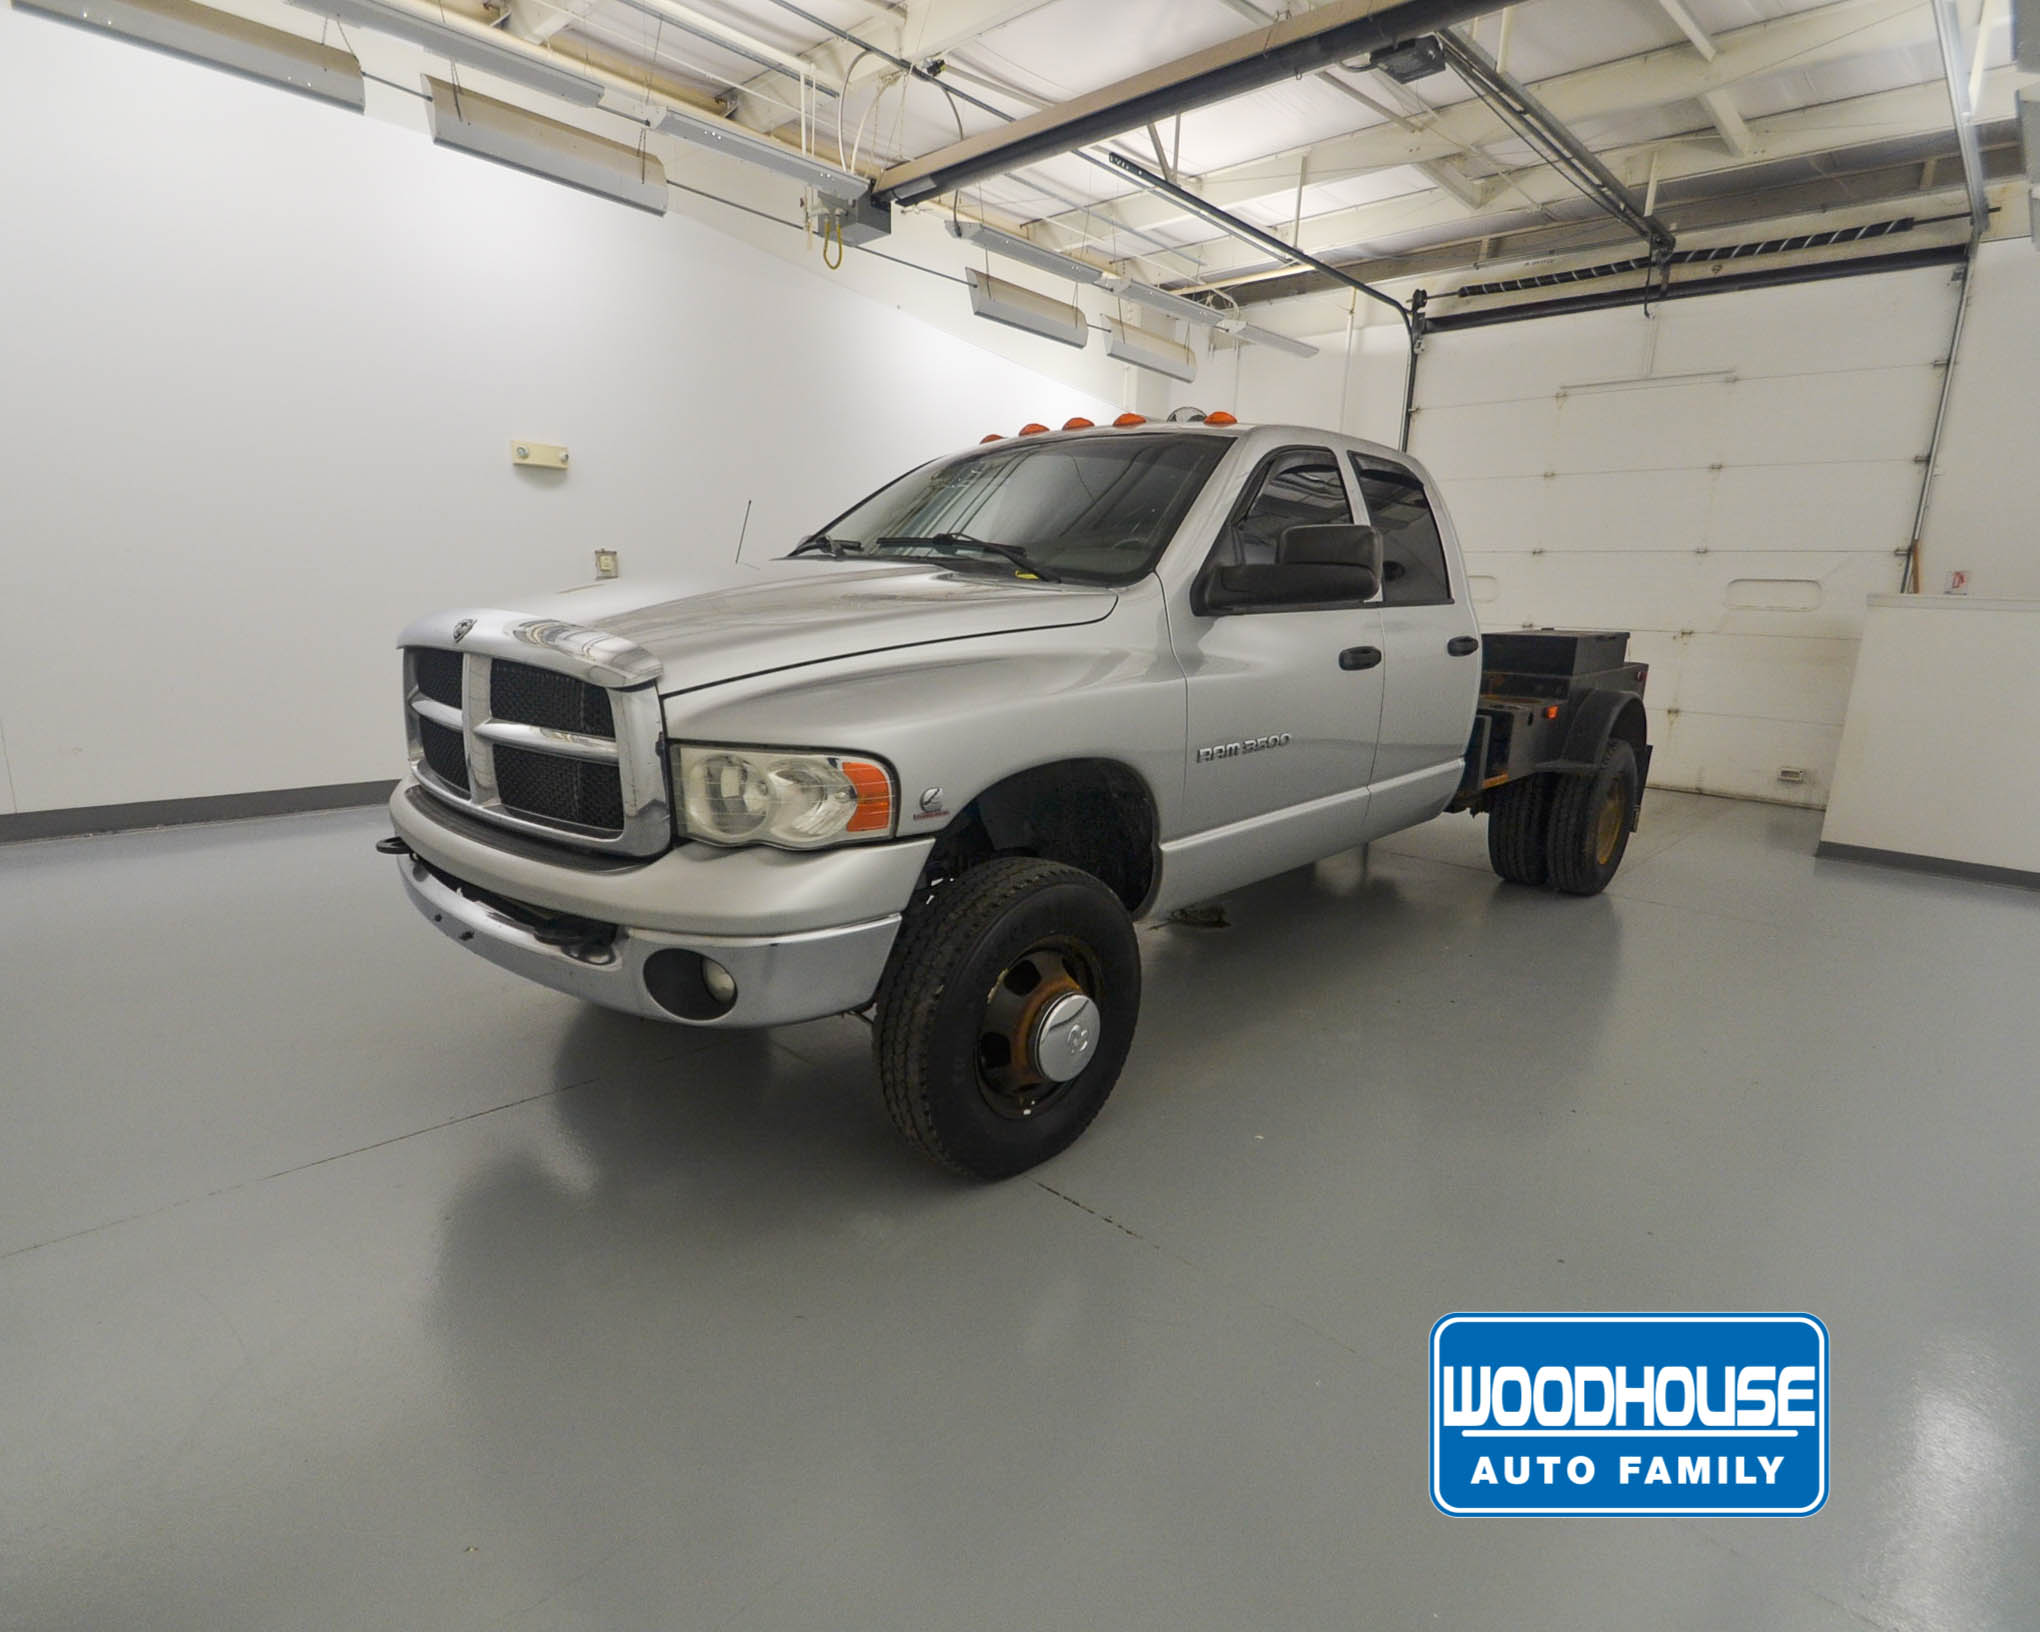 Dodge 3500 For Sale >> Woodhouse Used 2005 Dodge 3500 For Sale Chrysler Dodge Jeep Ram